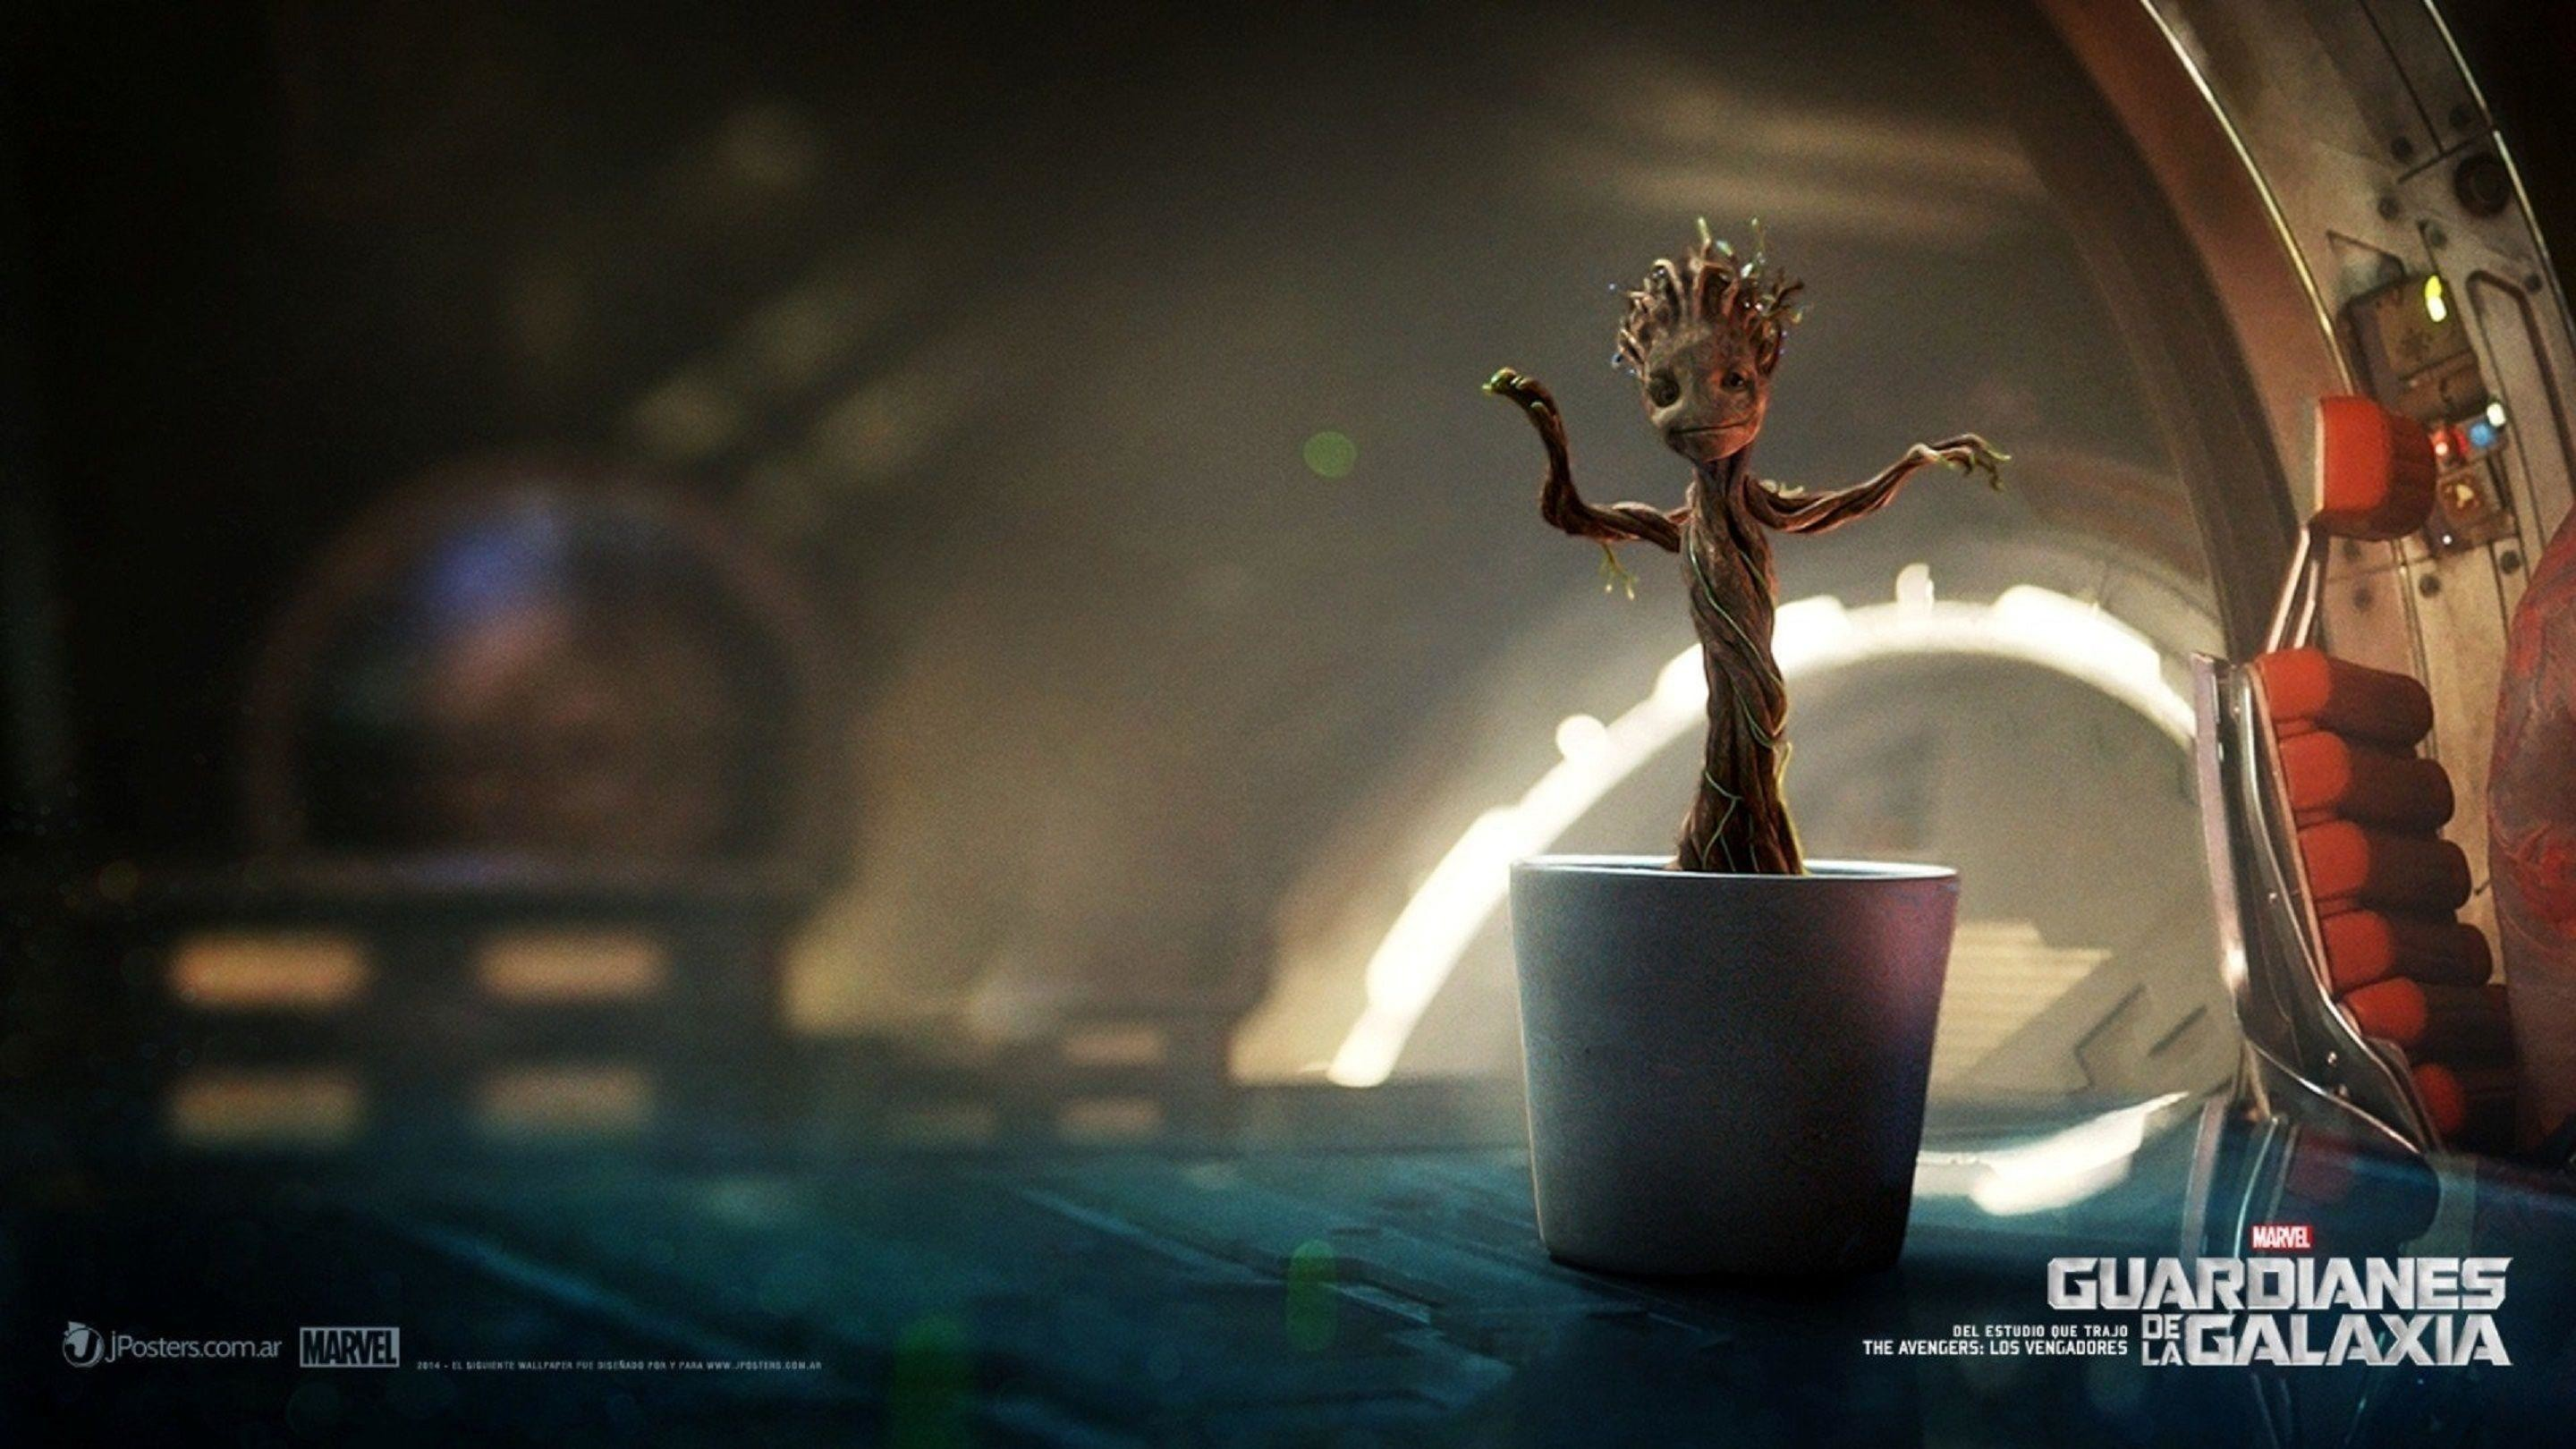 2880x1620 Guardians Of The Galaxy Baby Groot Wallpaper